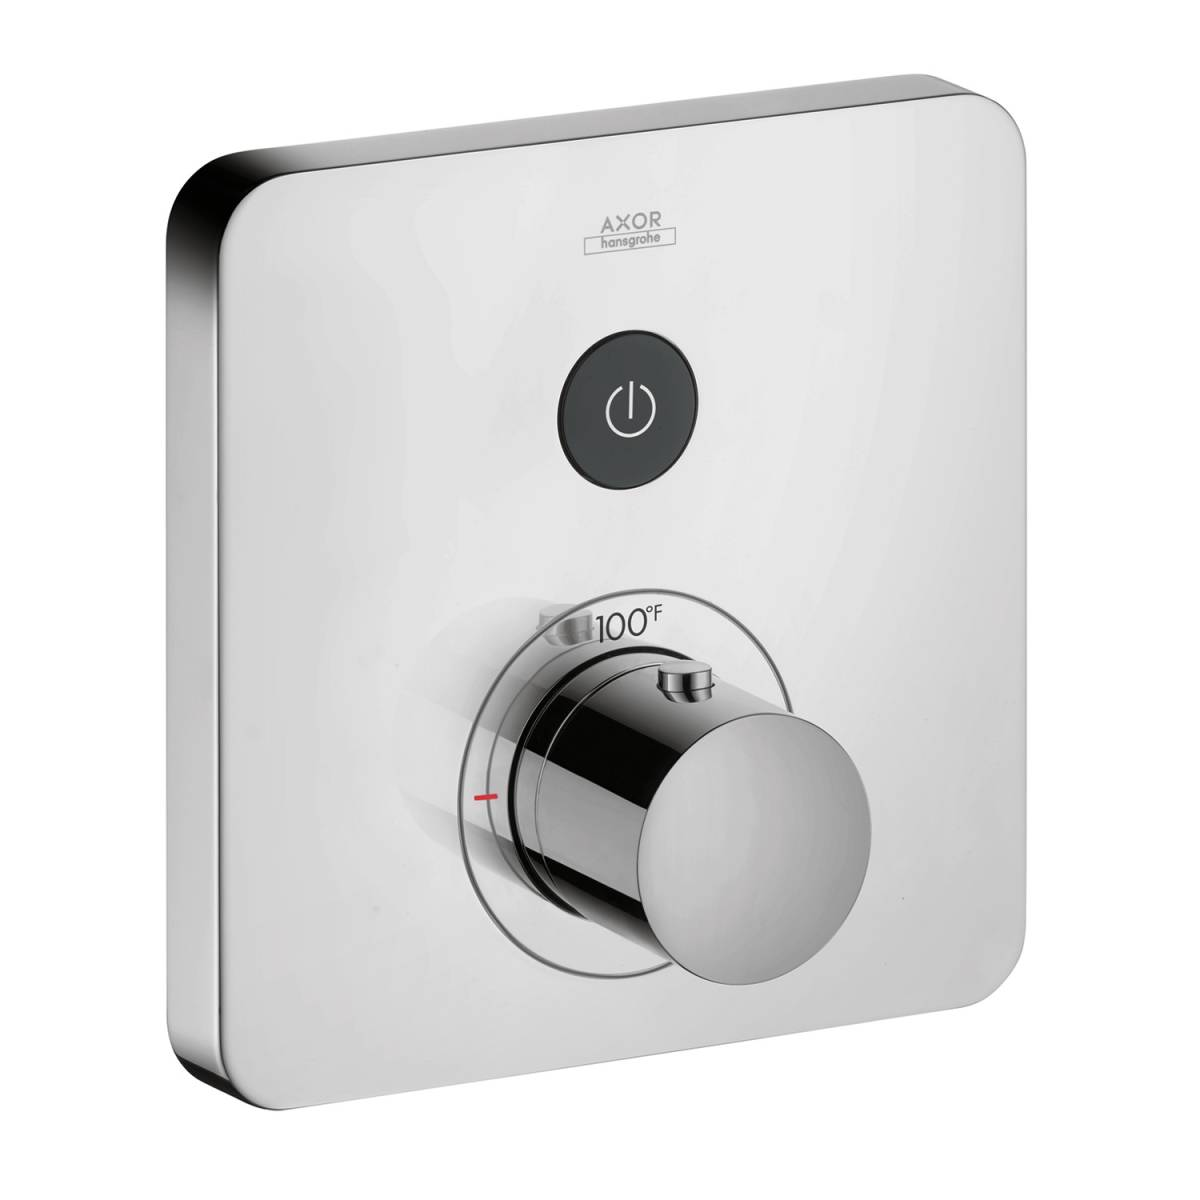 Thermostat for concealed installation softcube for 1 function, Chrome, 36705001